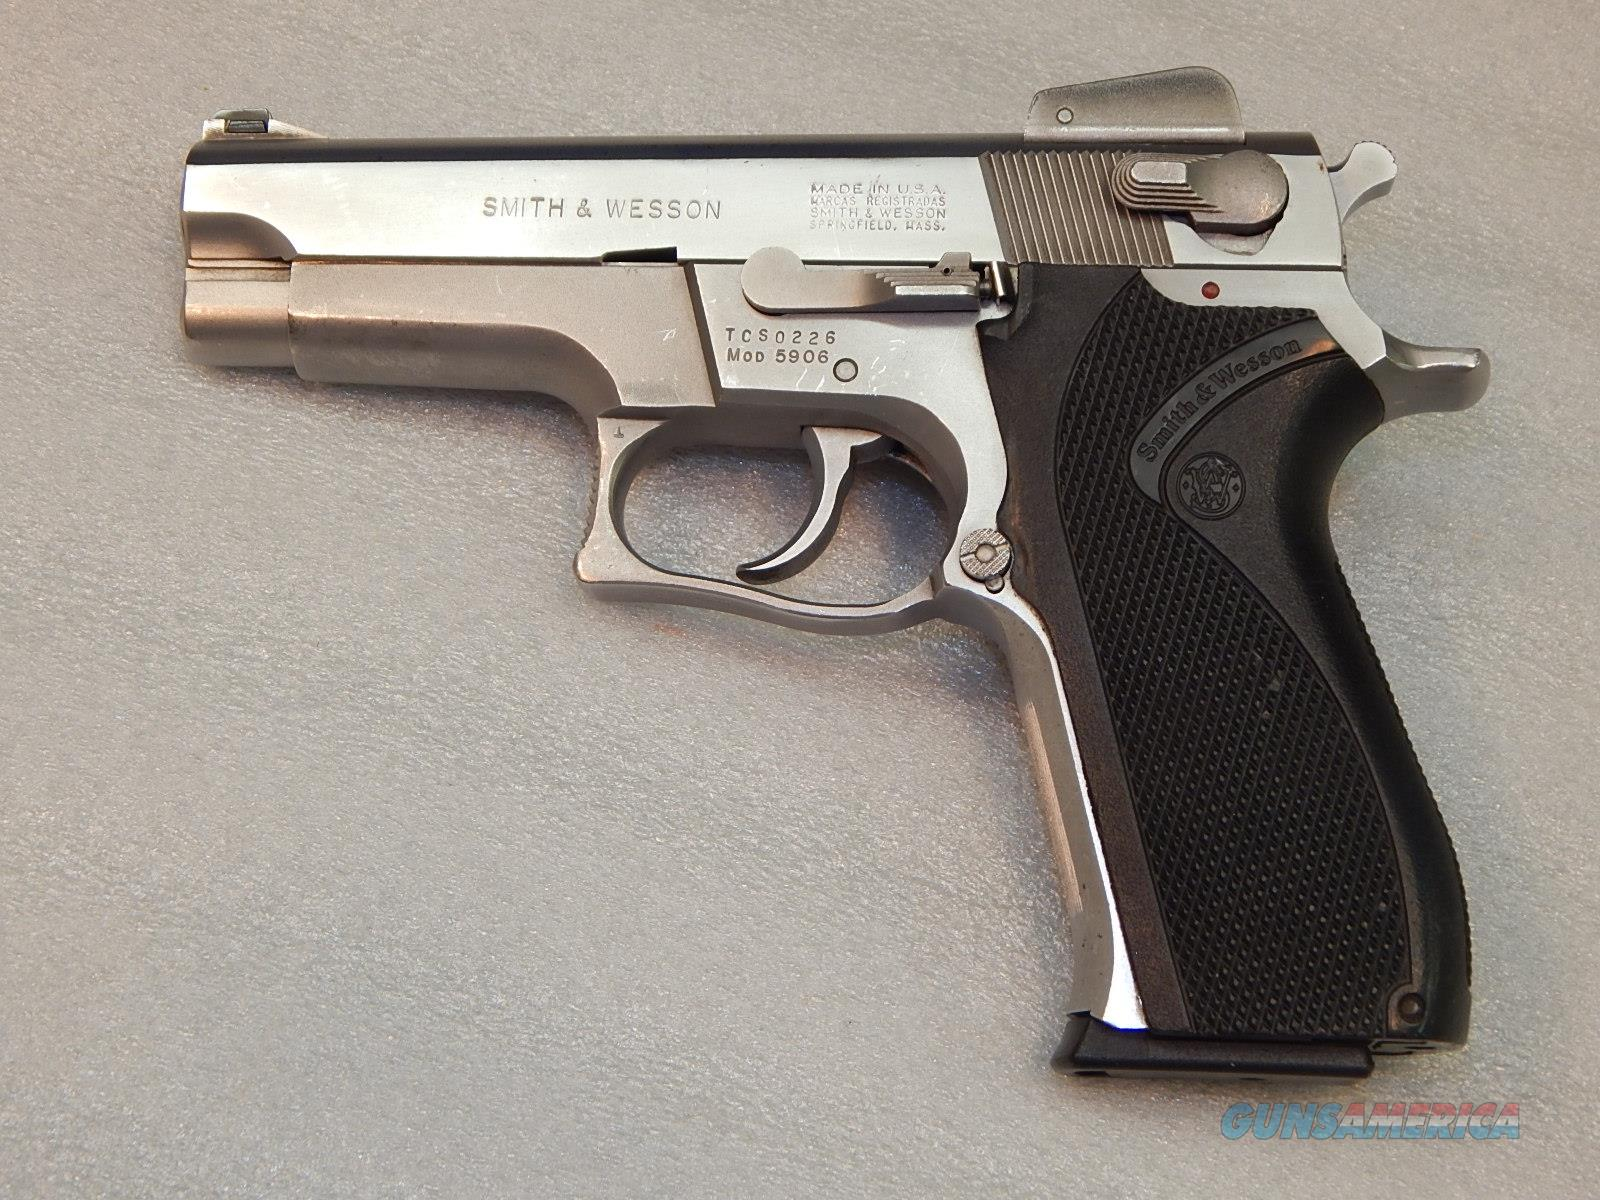 Smith & Wesson 5906 9mm 14+1  Guns > Pistols > Smith & Wesson Pistols - Autos > Steel Frame